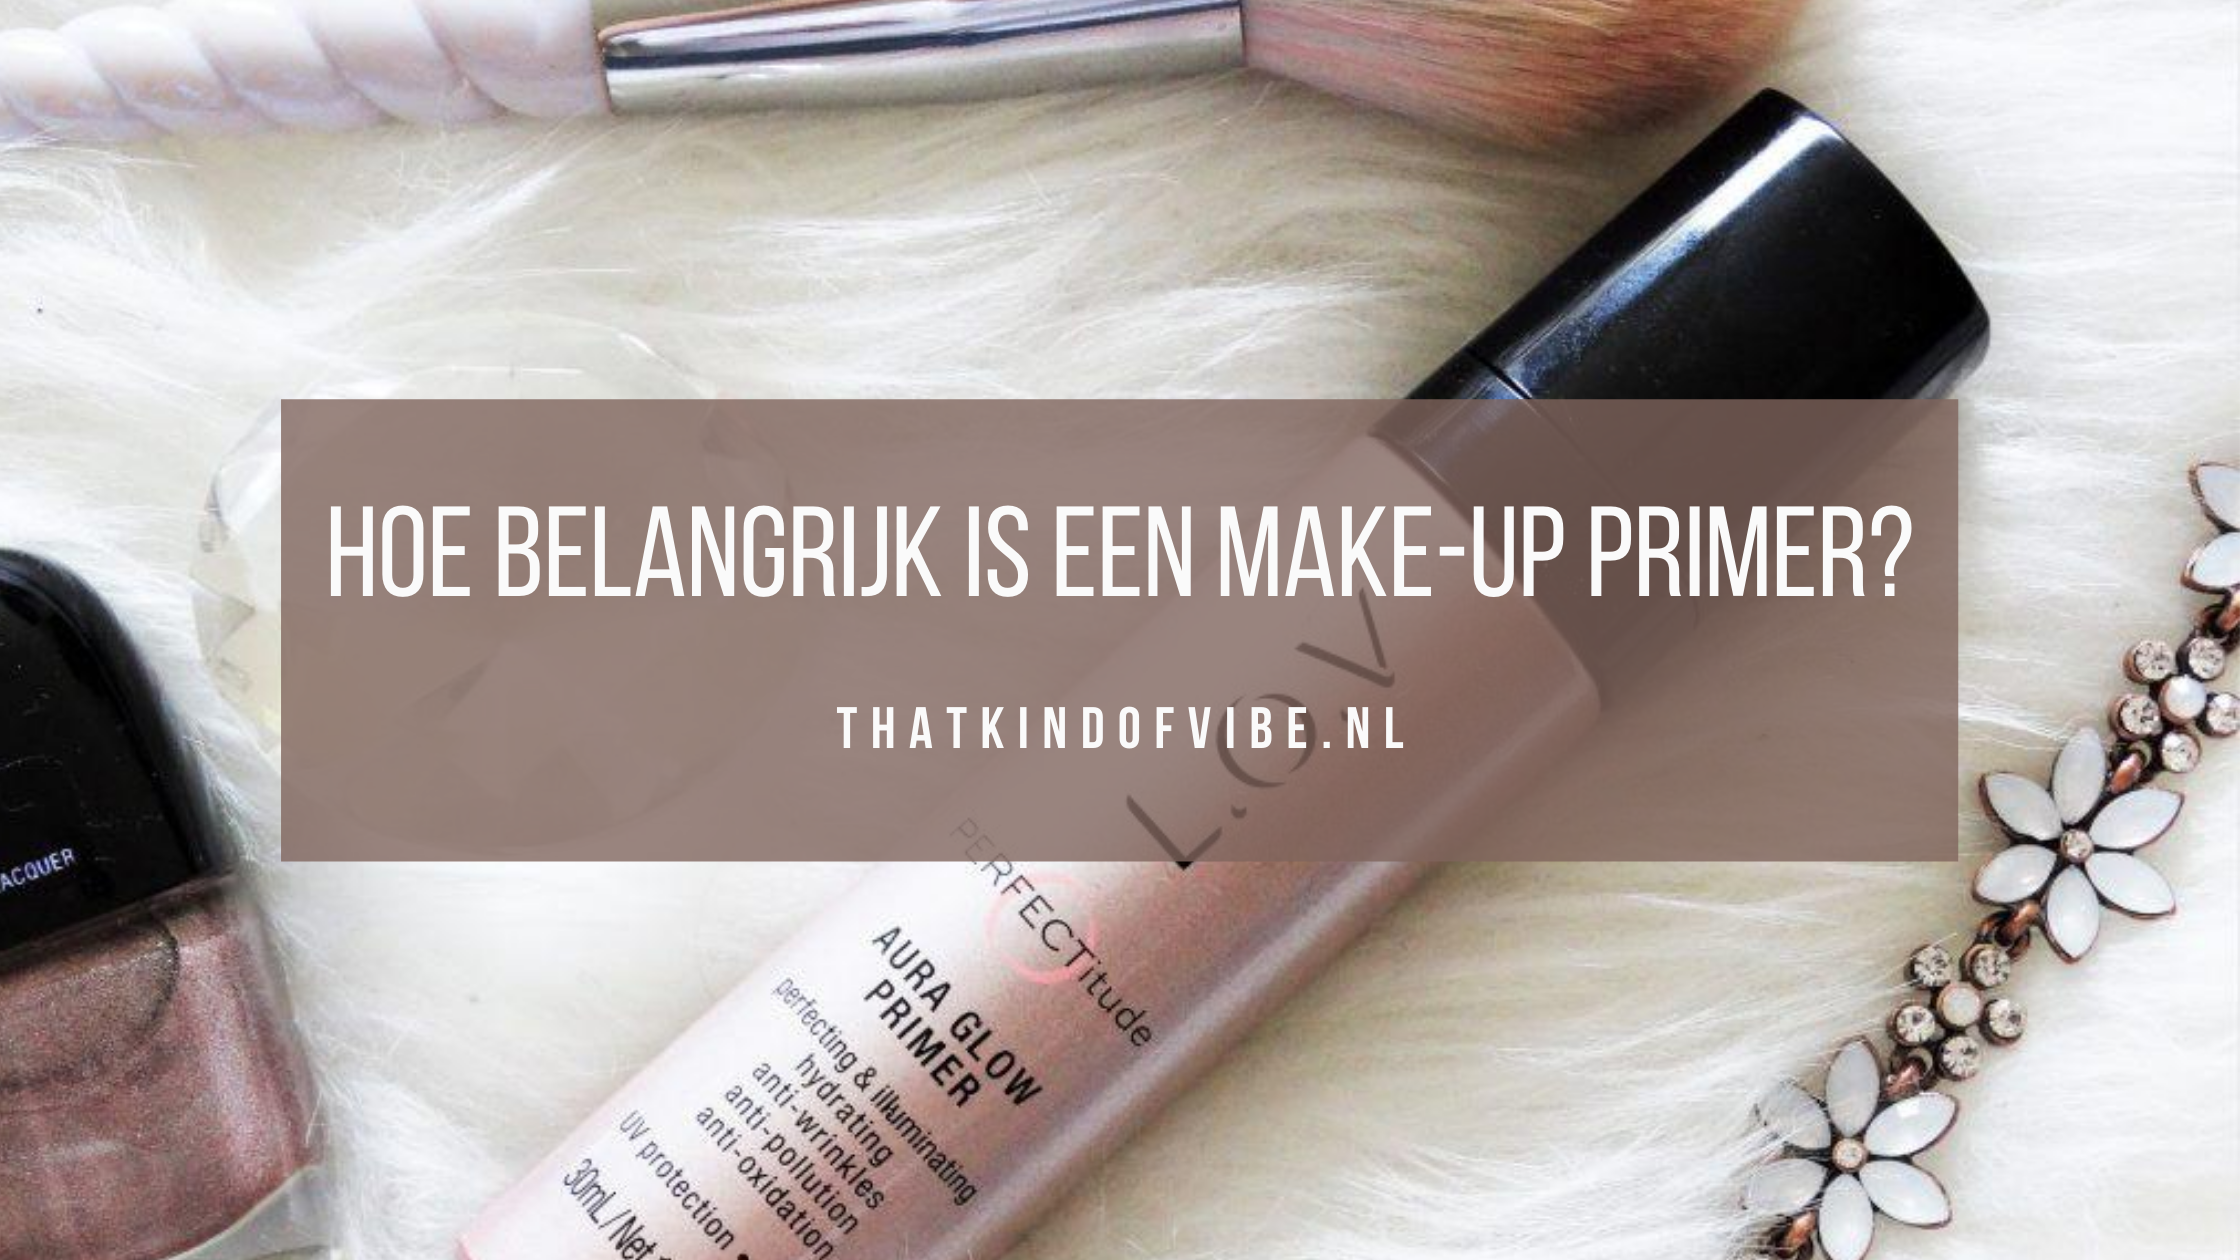 Hoe belangrijk is een make-up primer?